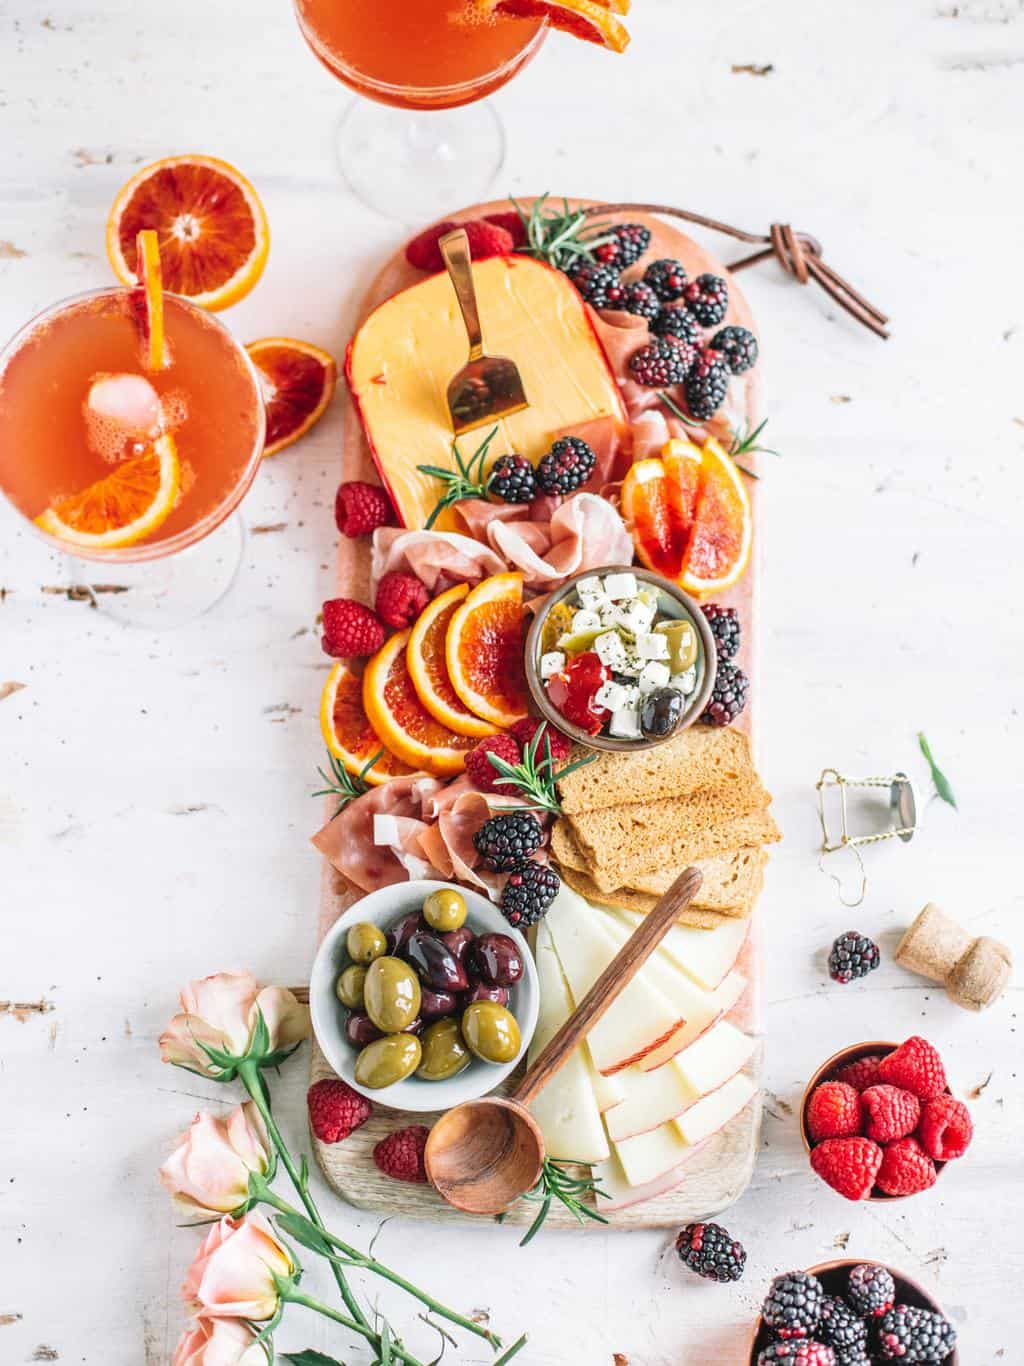 A romantic, date night In, charcuterie board for two. Perfectly curated for Valentines date night or any romantic holiday at home.